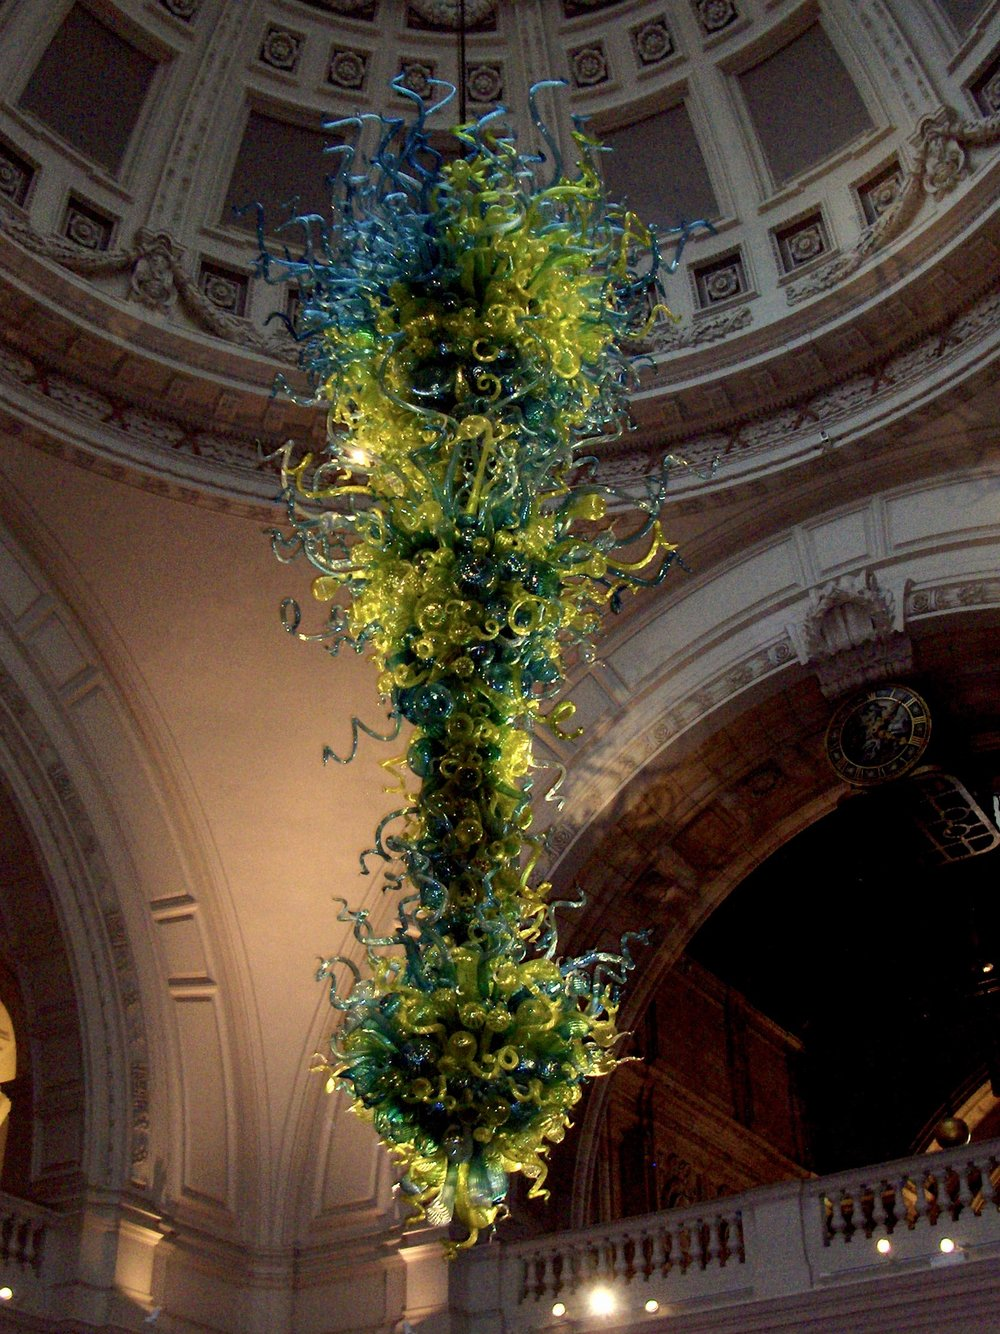 A Chihuly Chandelier at the V&A Museum